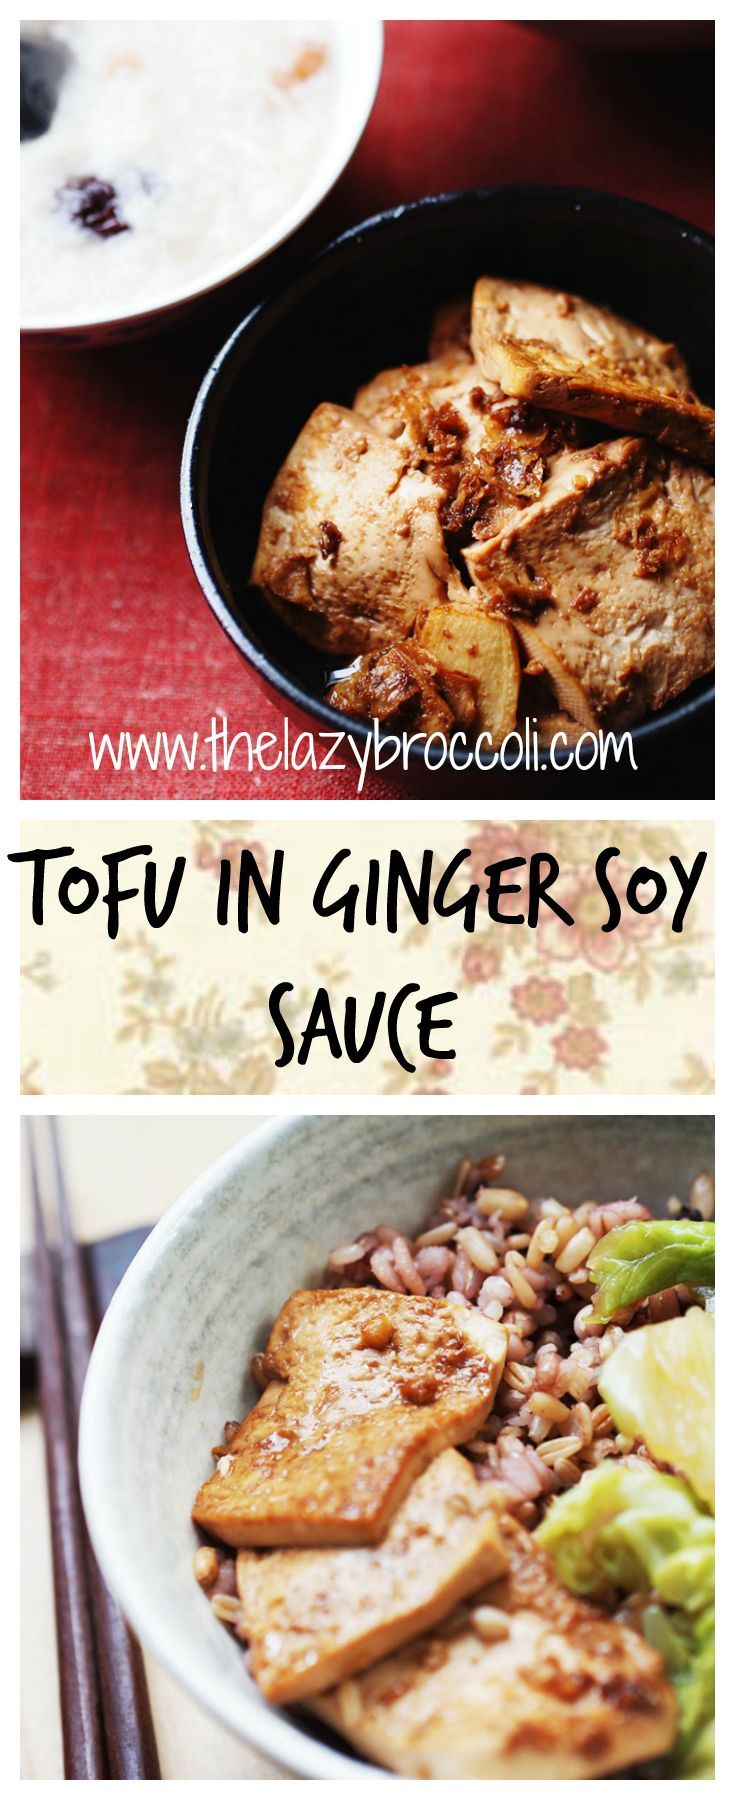 Tofu In Ginger Soy Sauce                                                                                                                                                                                 More